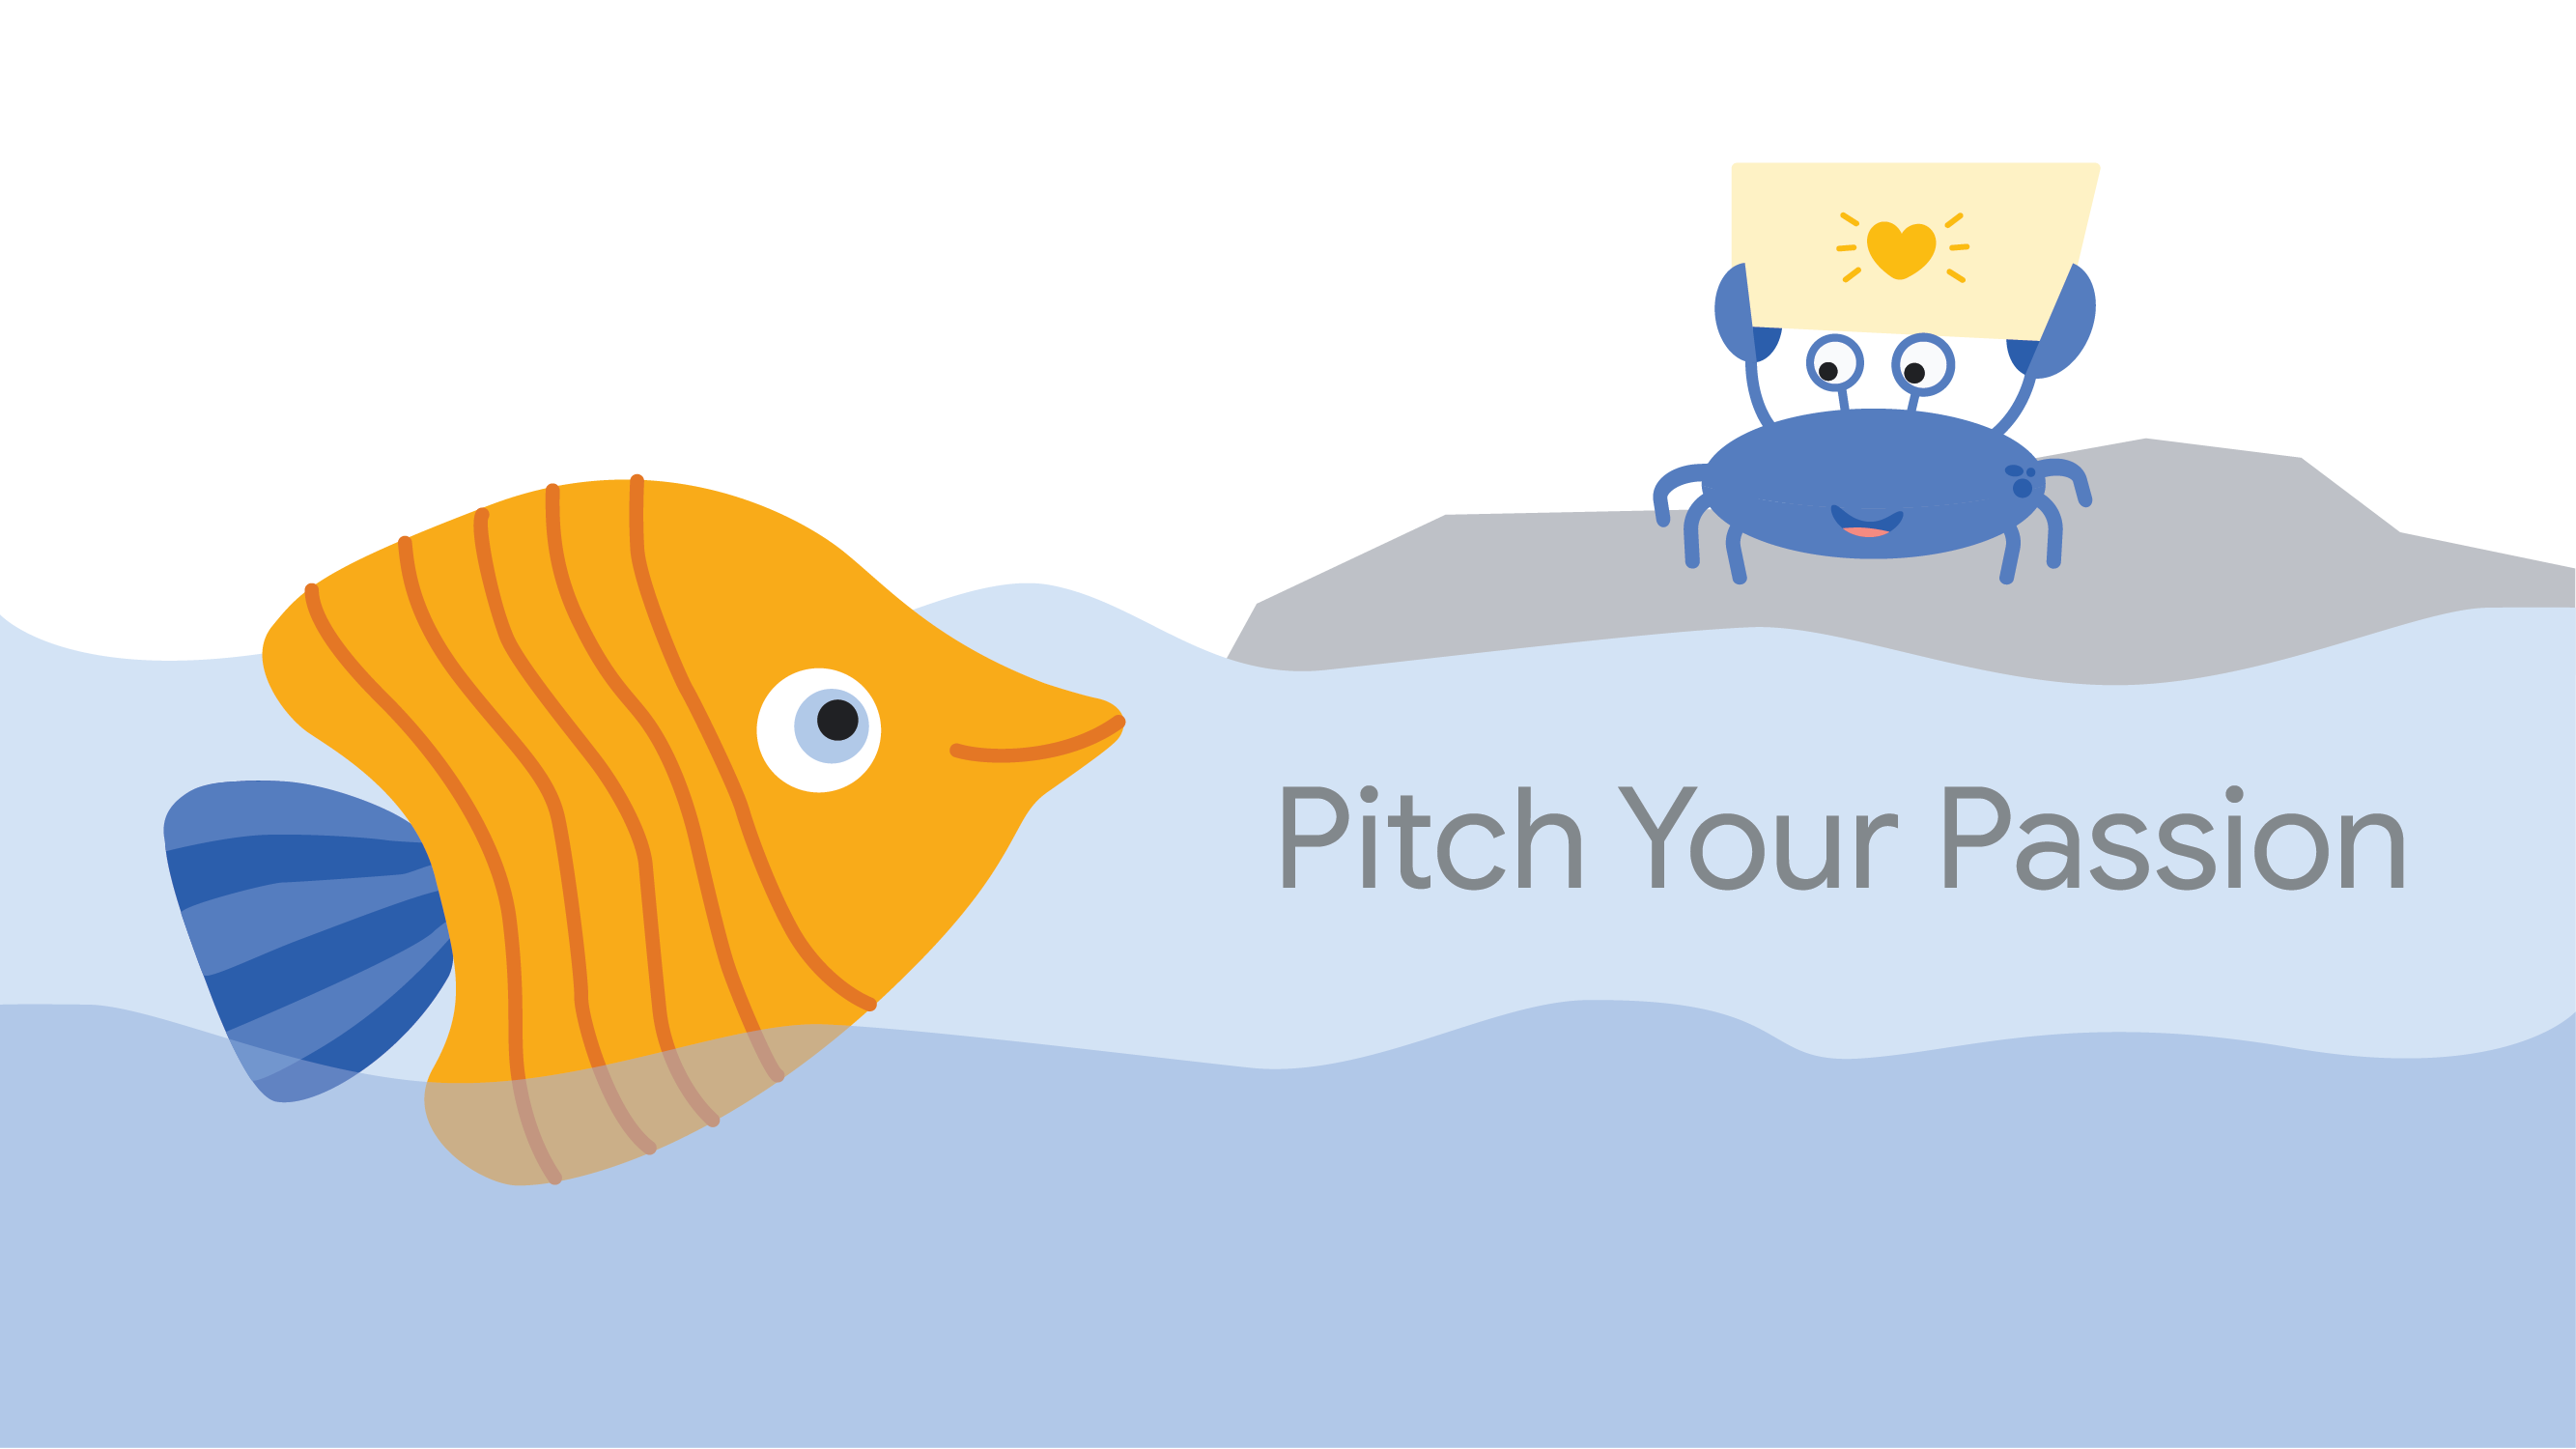 PITCH YOUR PASSION